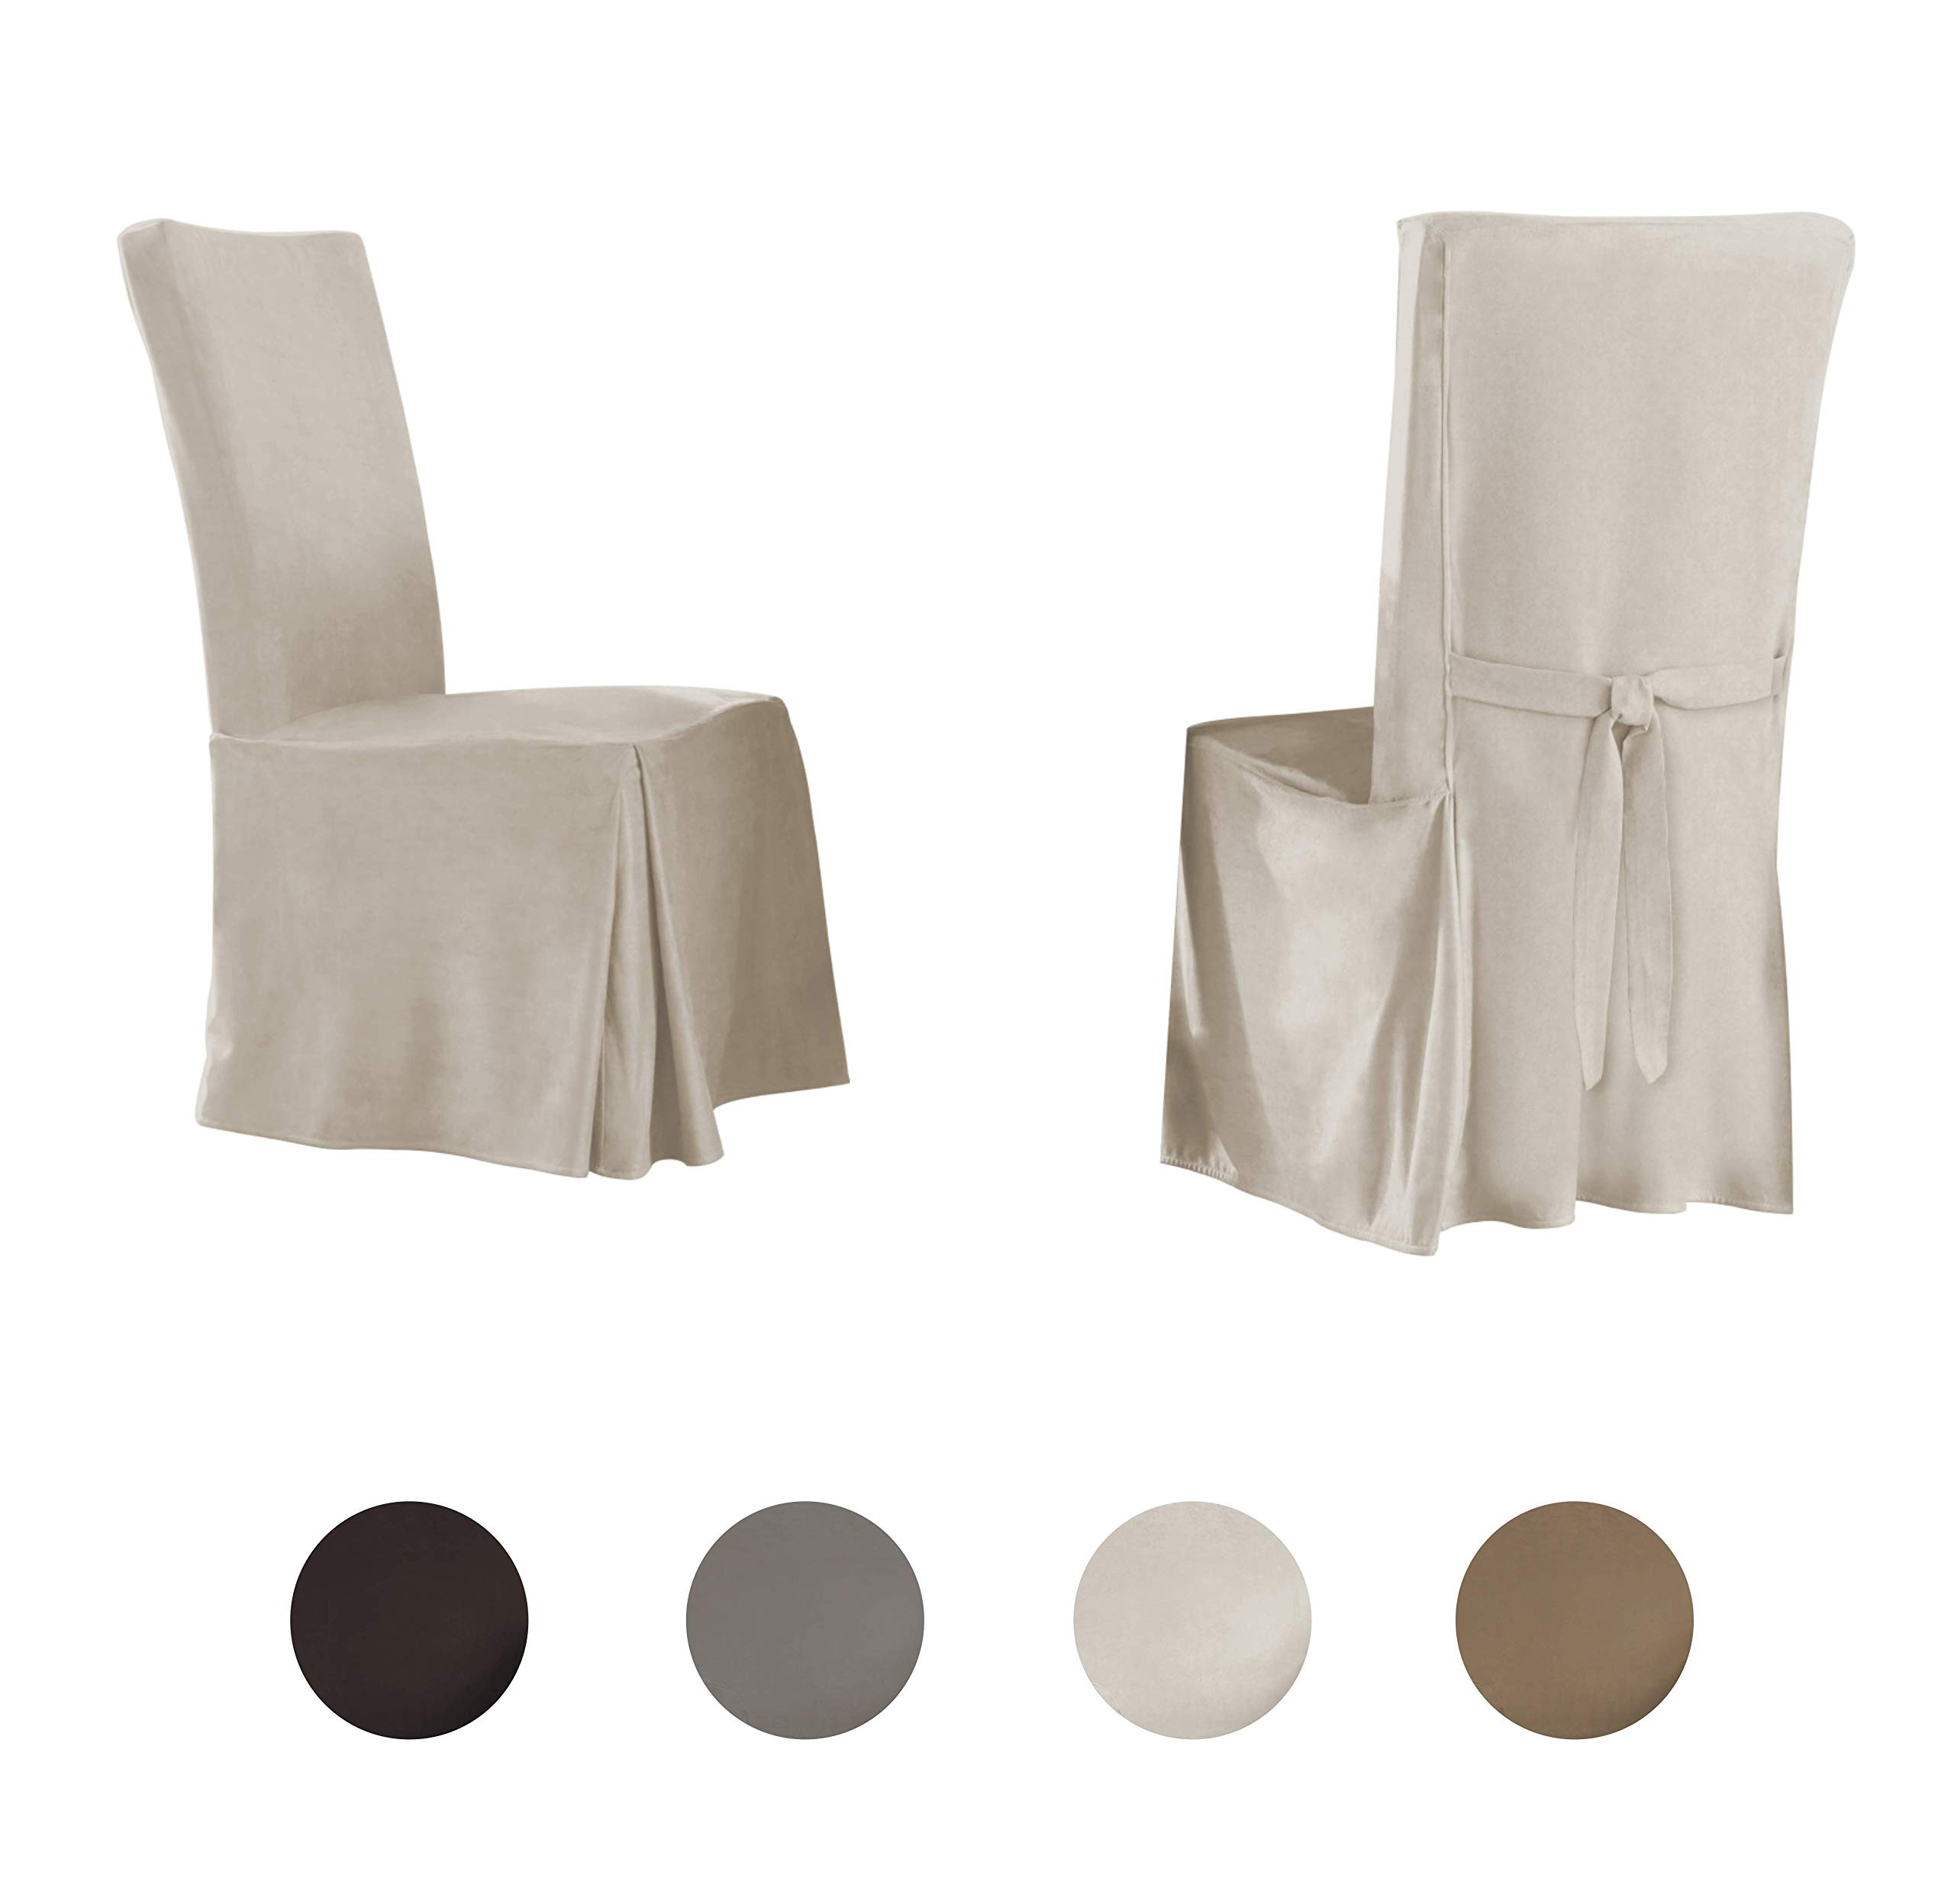 Perfect Fit | Relaxed Fit Smooth Suede Furniture Slipcover for Dining Room Chair, Long Skirt (Ivory)